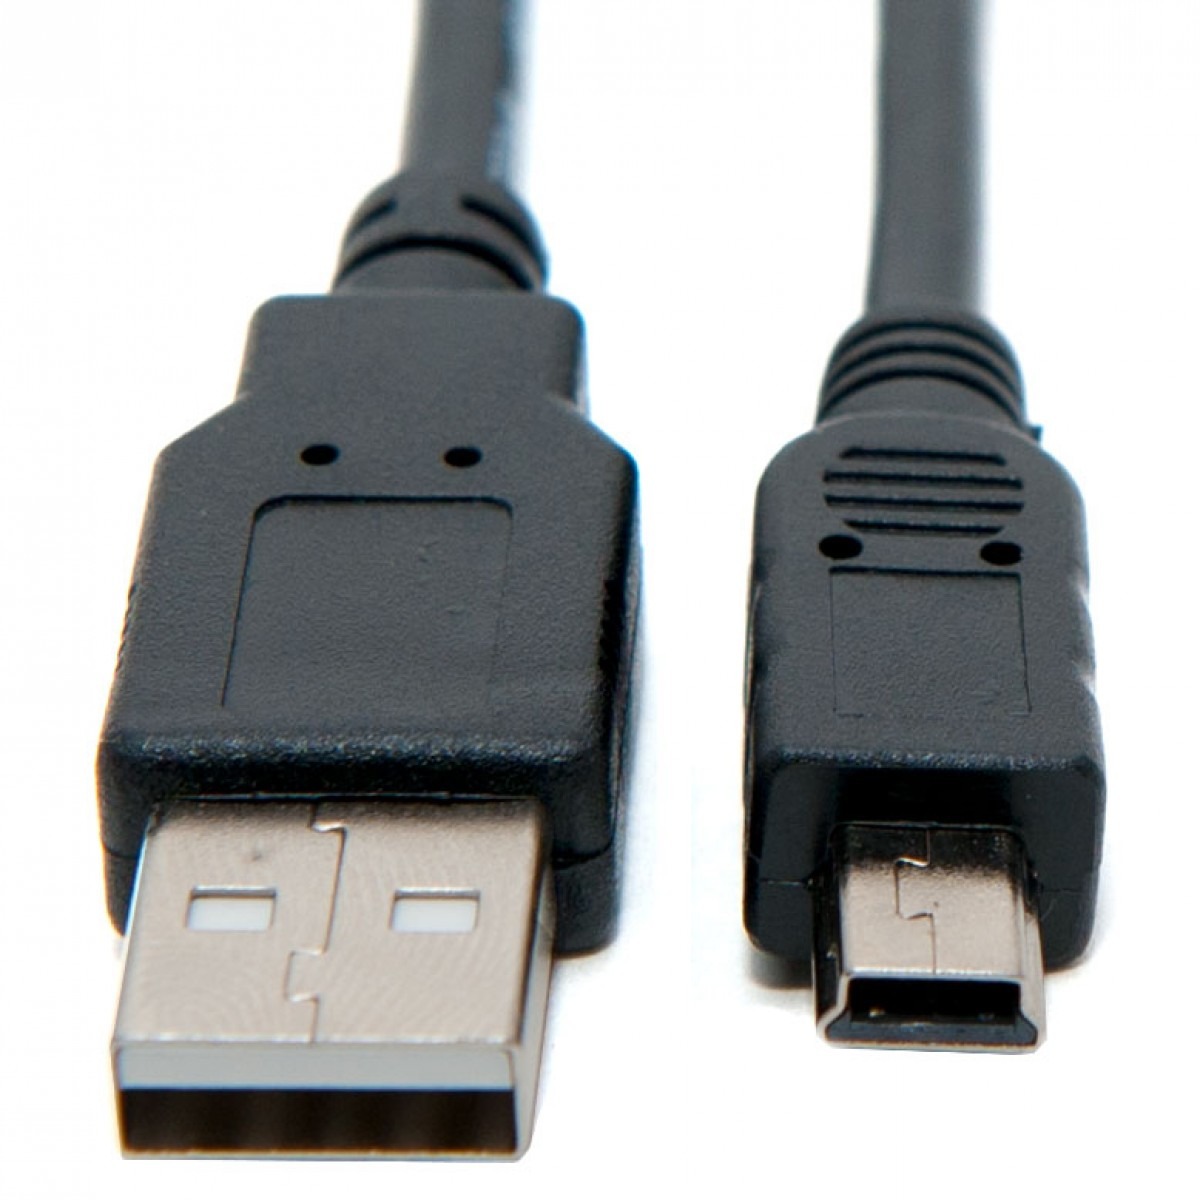 Canon Ixus 160 Camera Usb Cable Keple Com